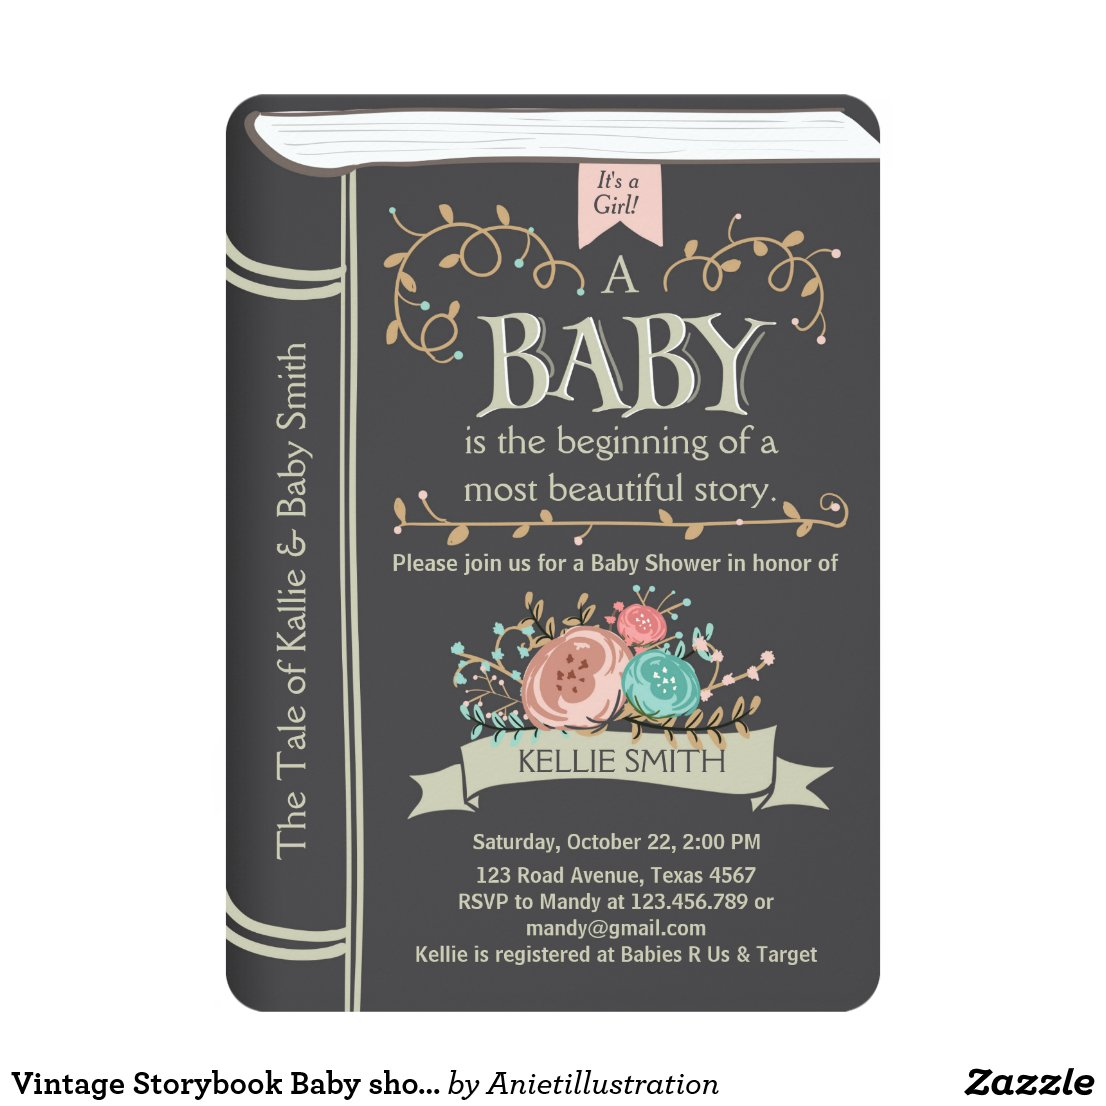 Vintage Storybook Baby shower invitation Unisex